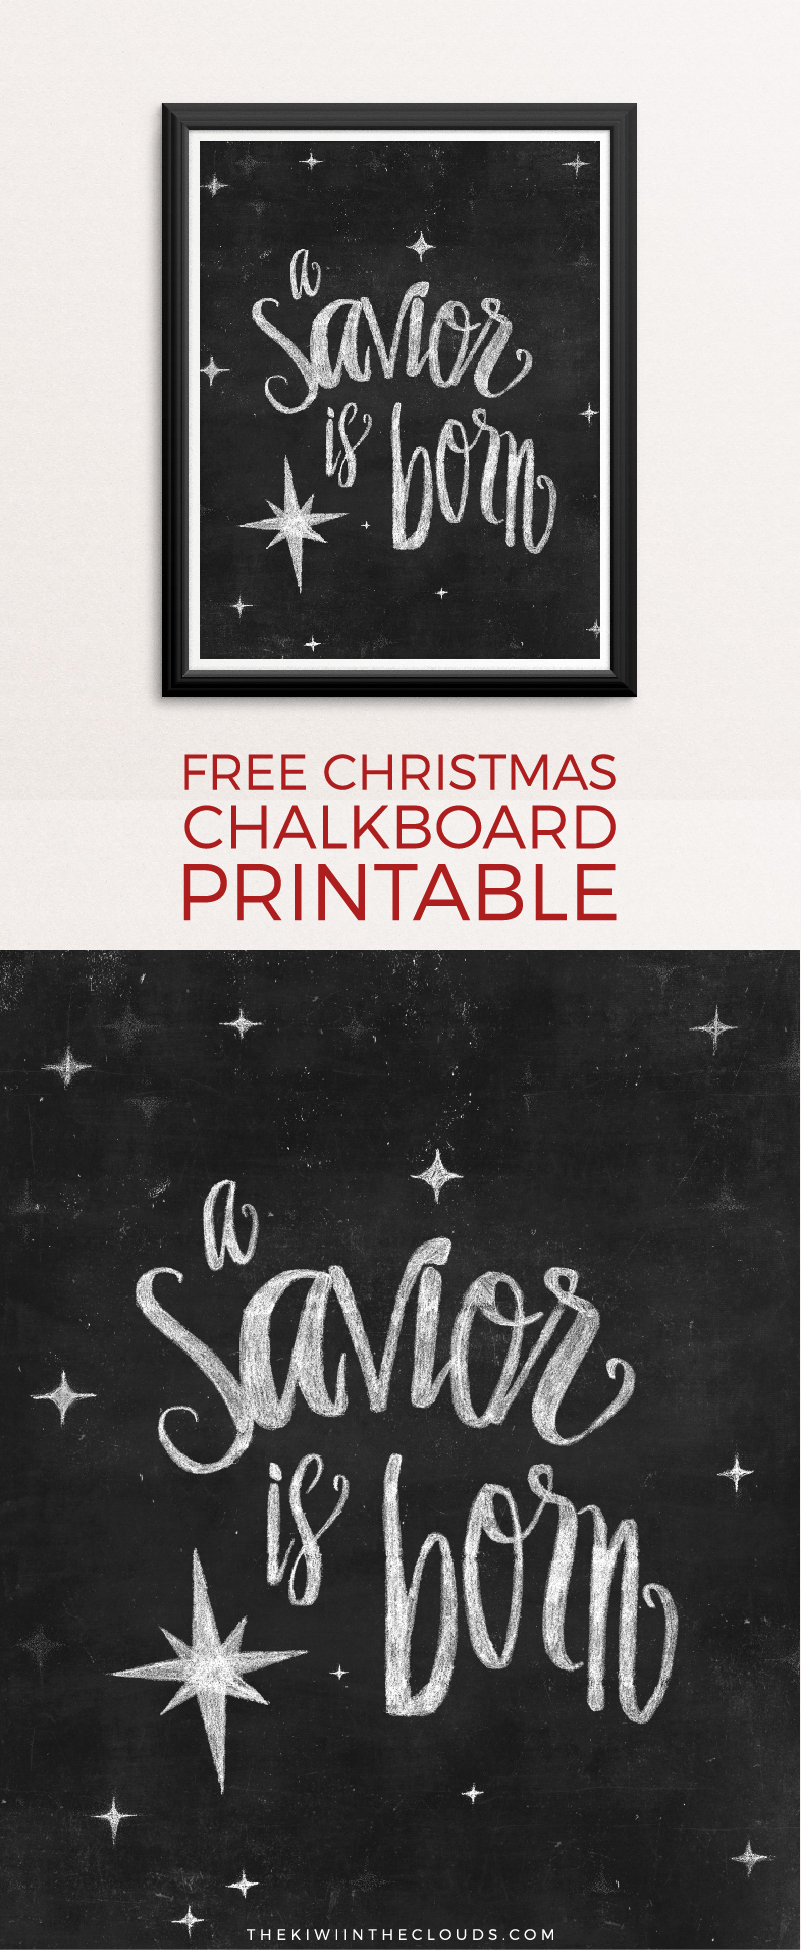 Fun Christmas Printables for your Home - A Savior Is Born | Simple Everyday Mom